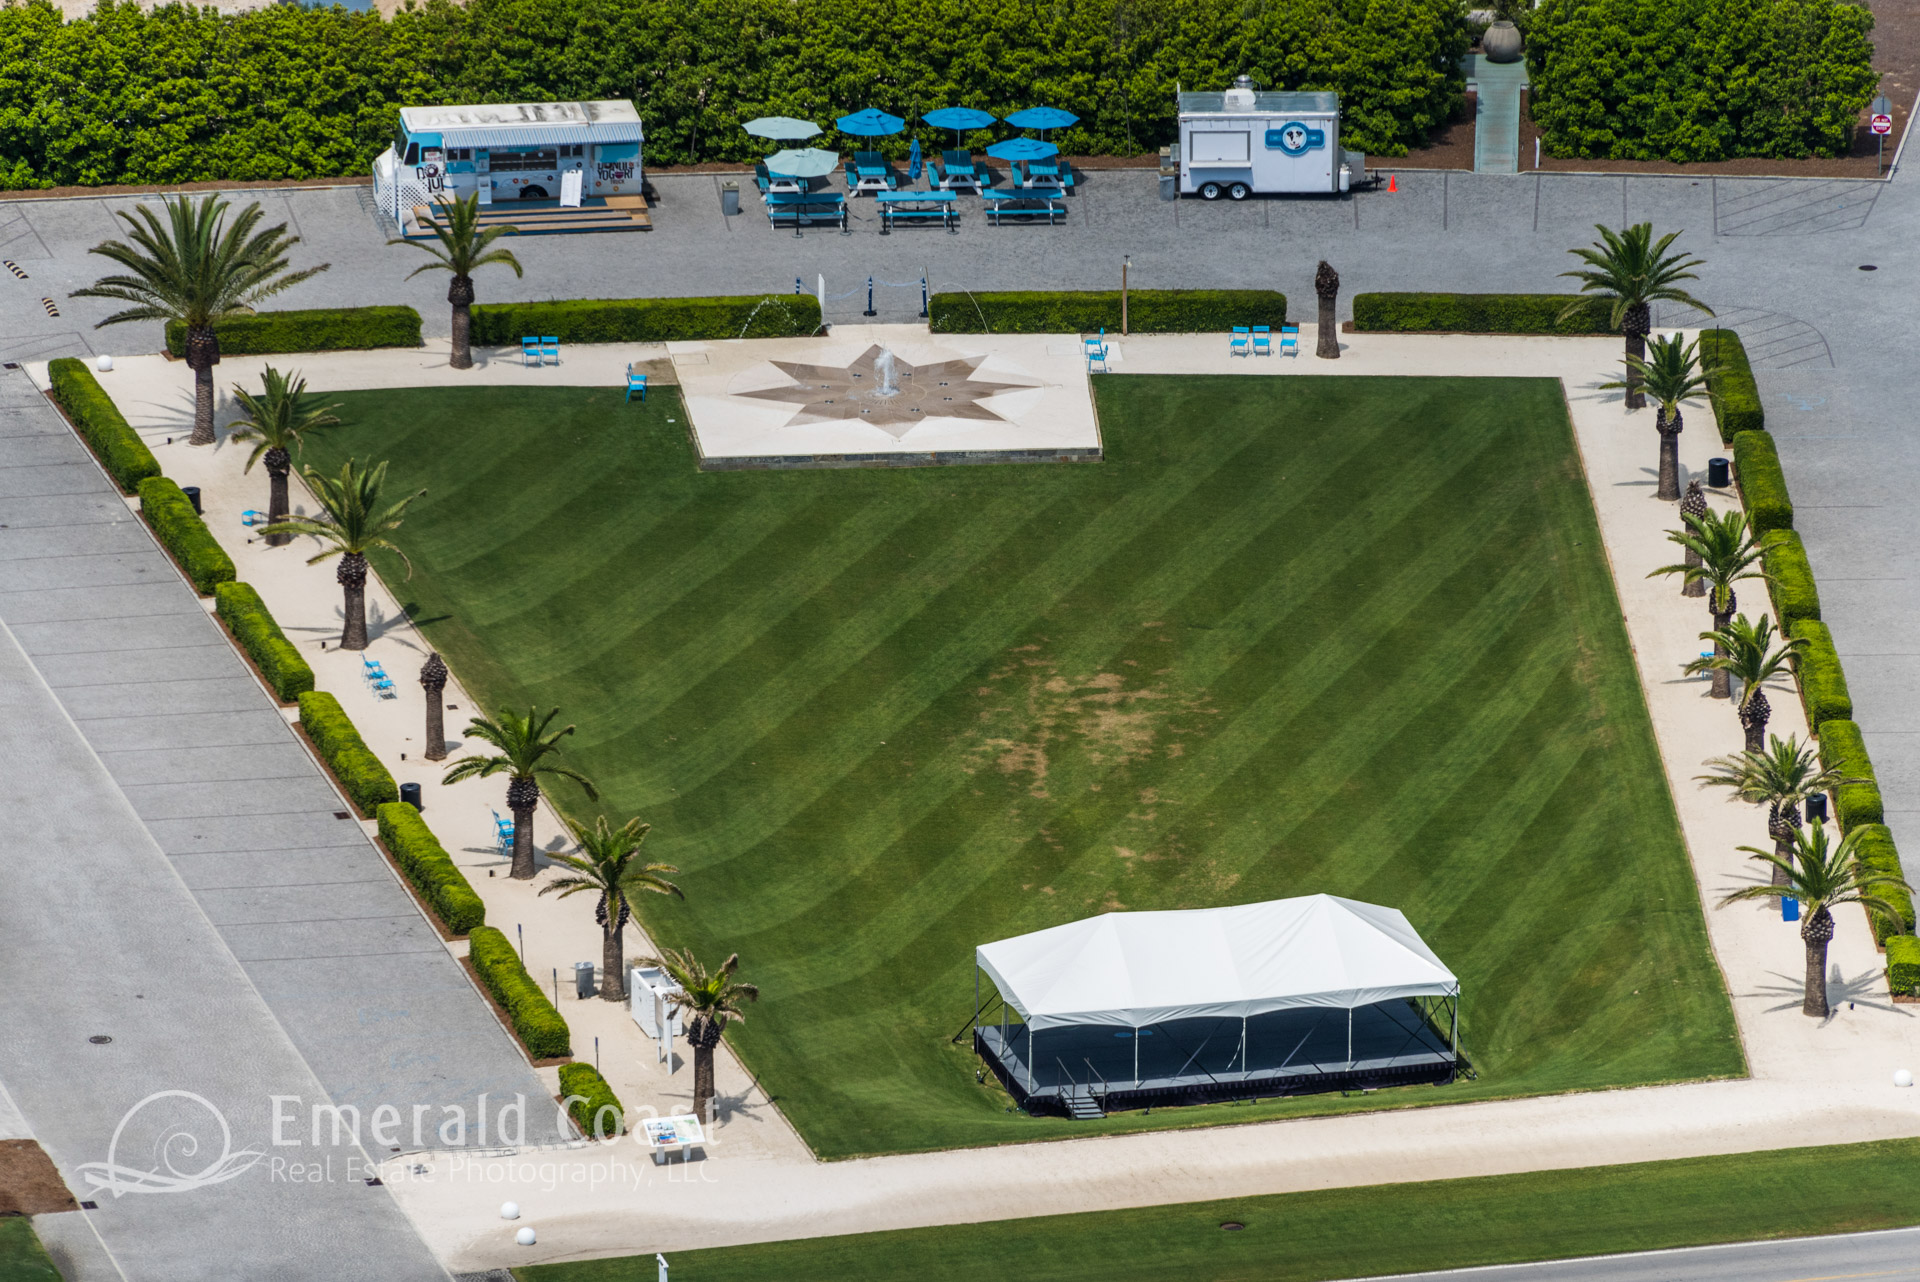 Aerial View of the lawn at Alys Beach